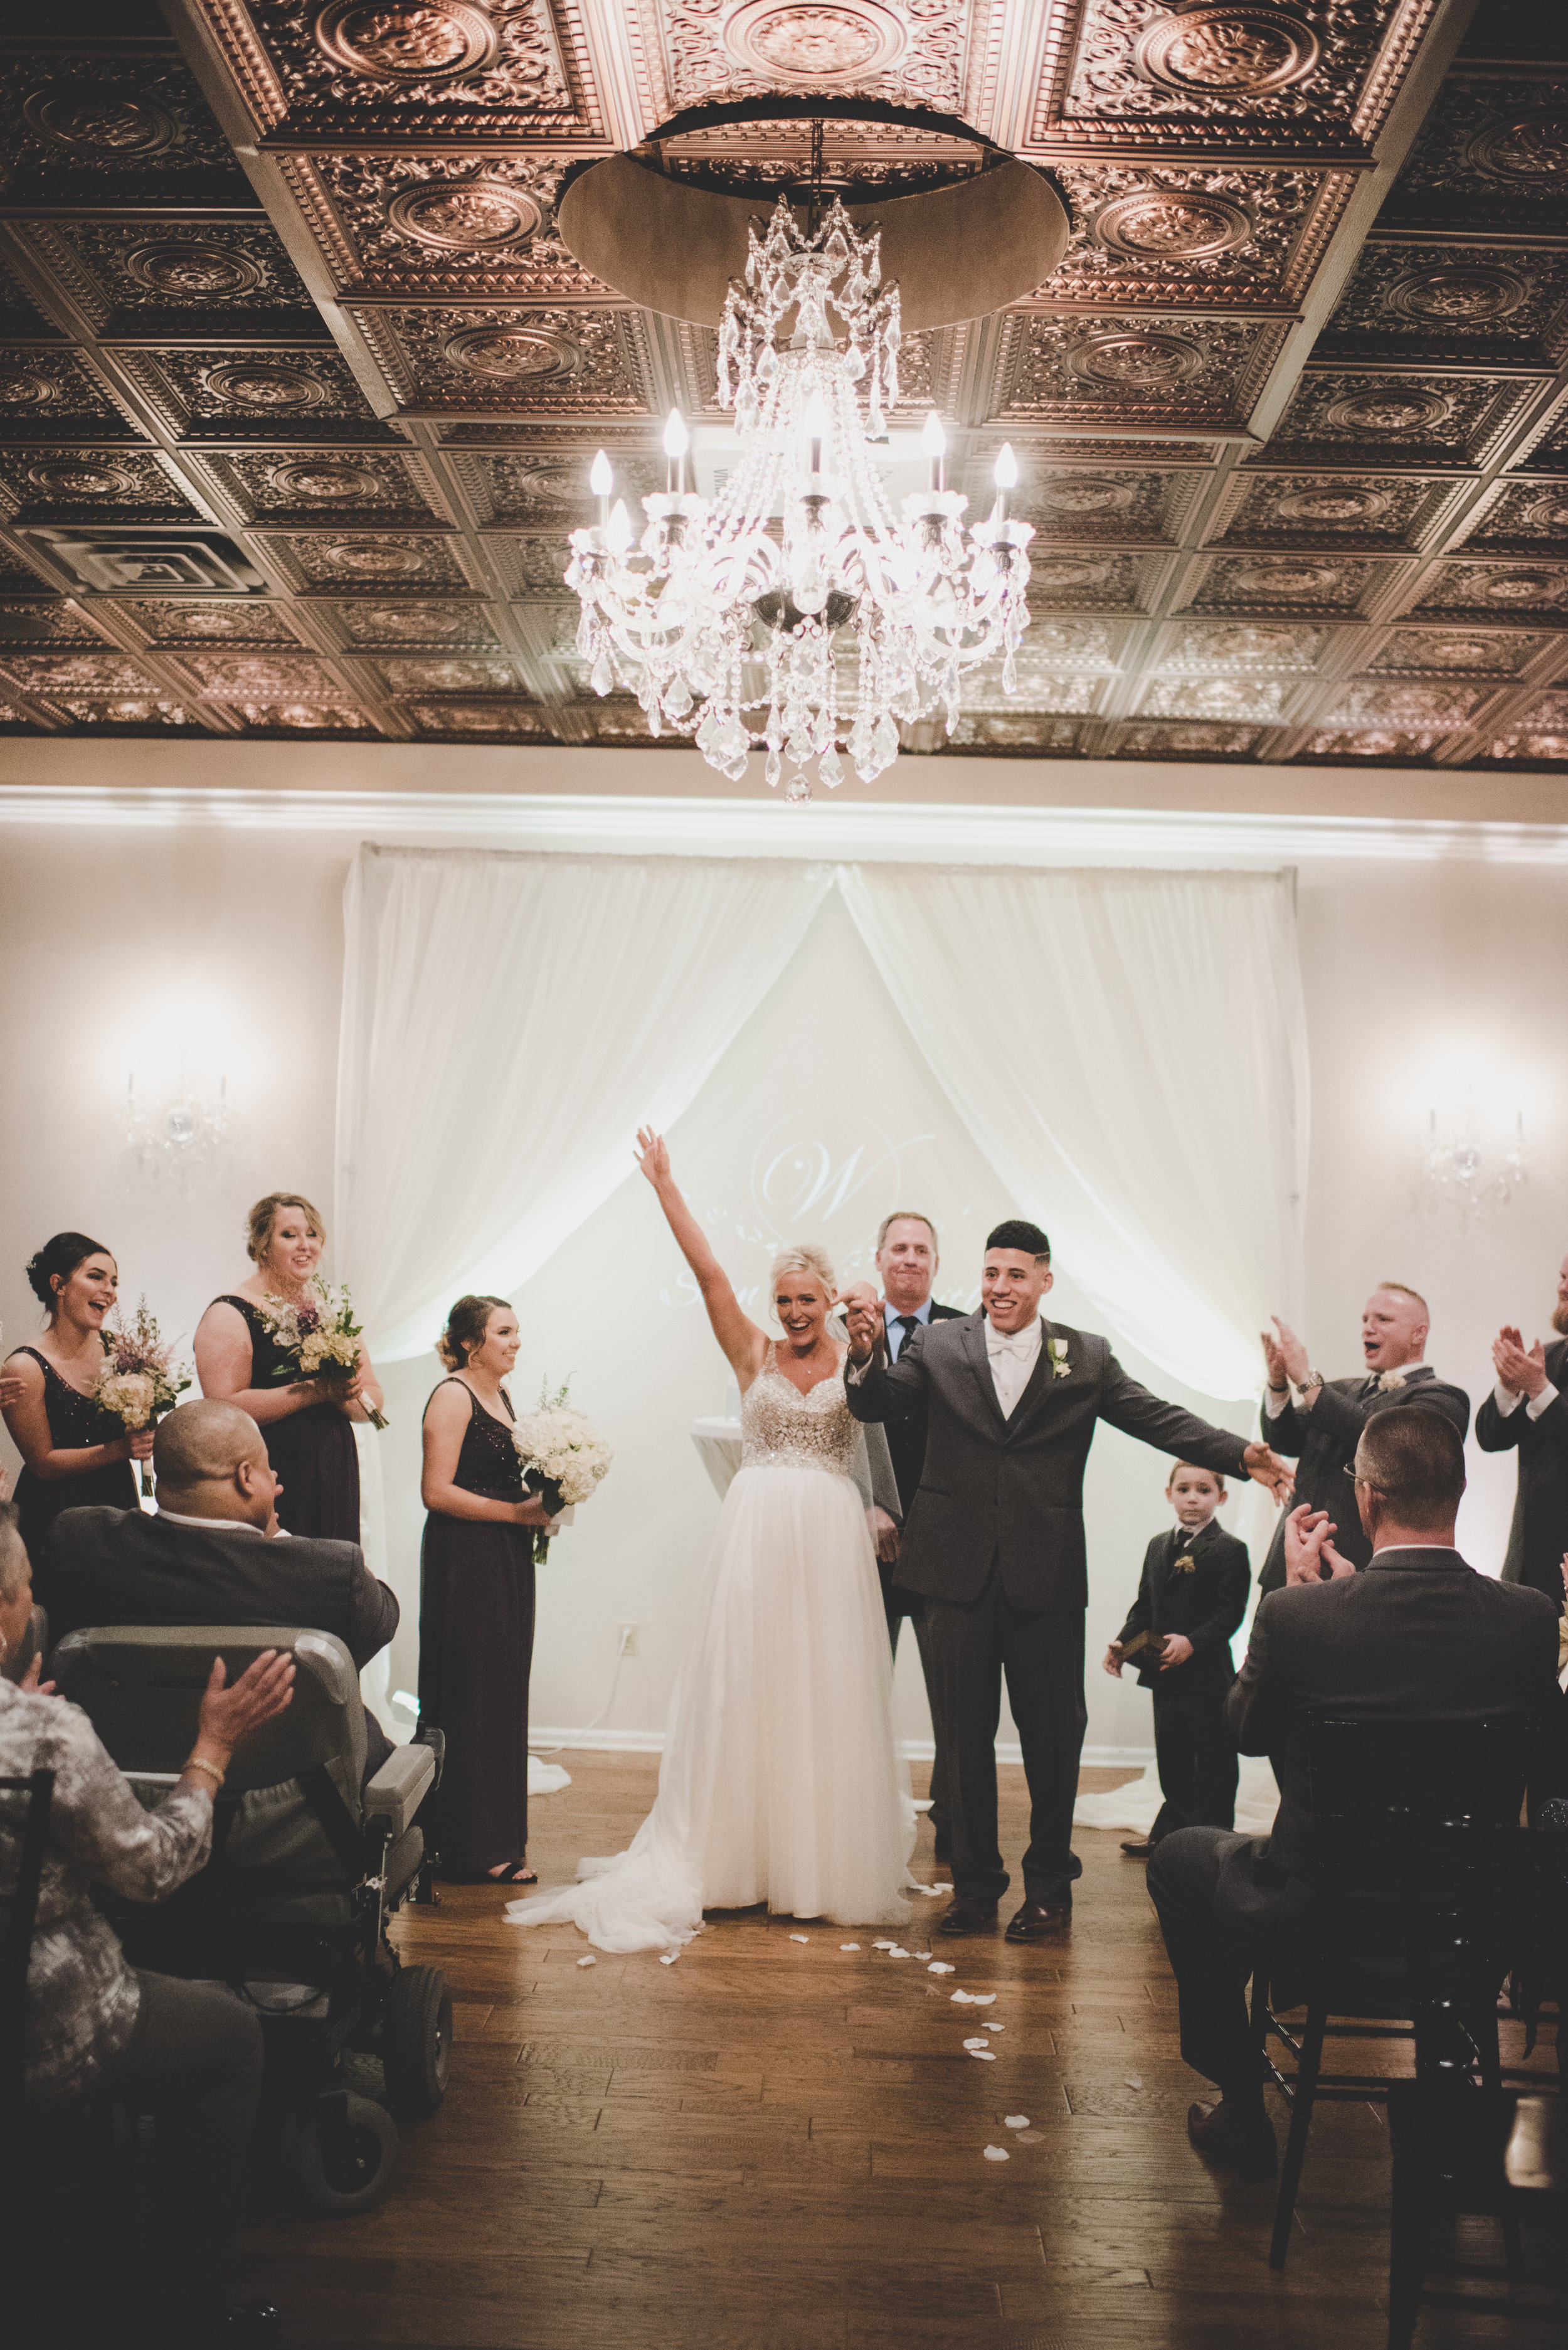 Sean+Caitlin | JWild Photography 966.jpg